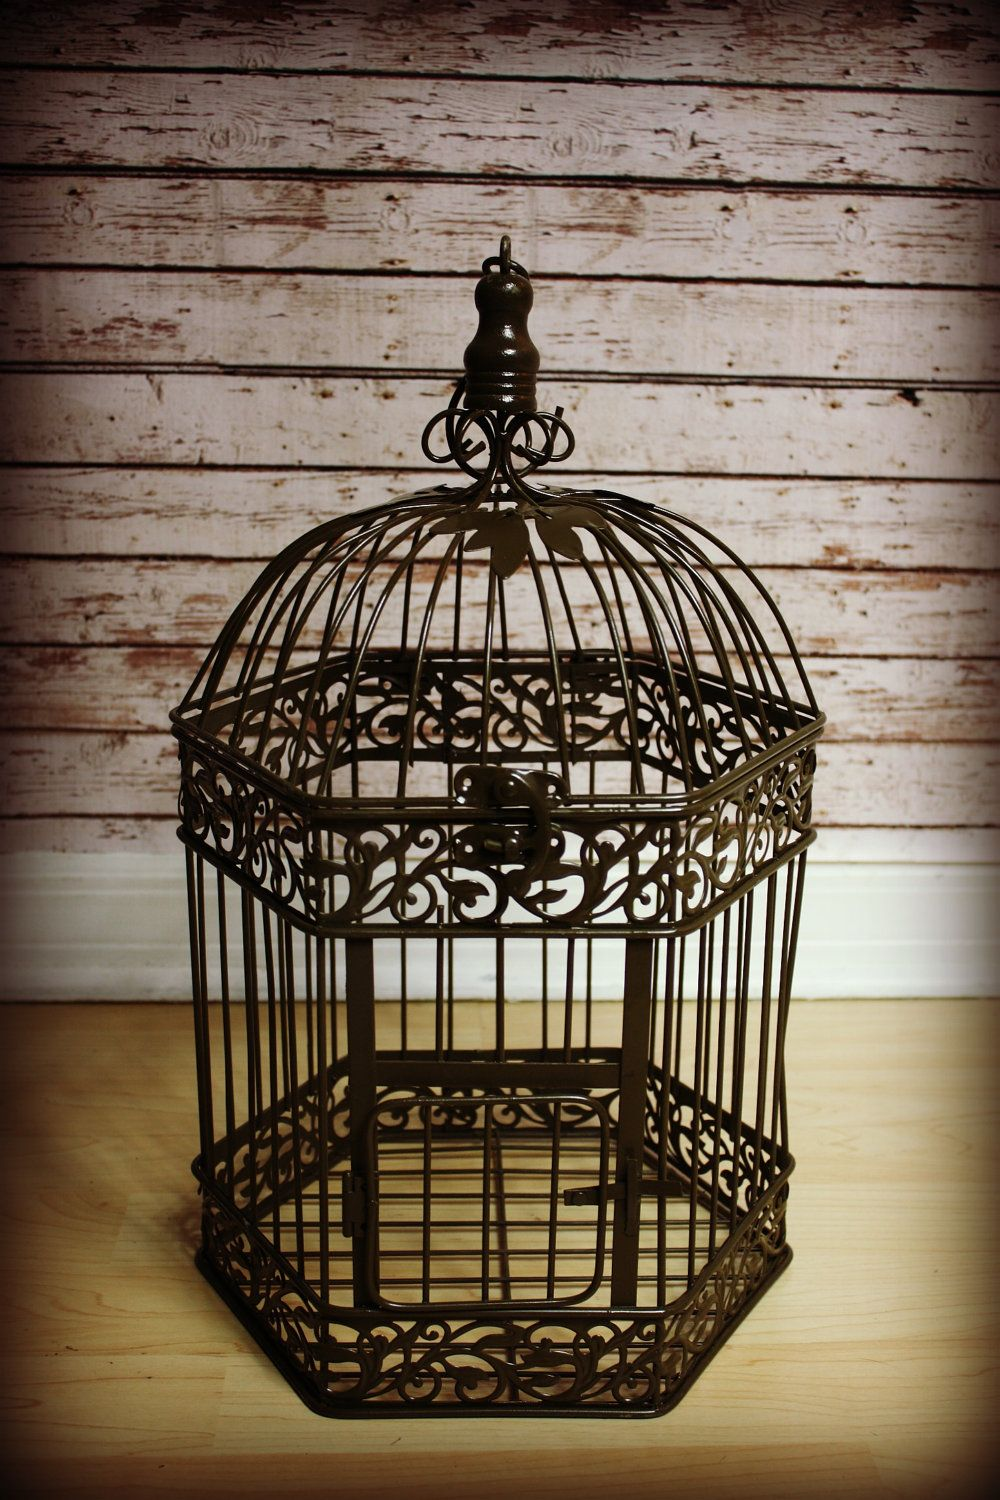 Antique Bird Cages Bing Images On Etsy La Ronde Pinterest